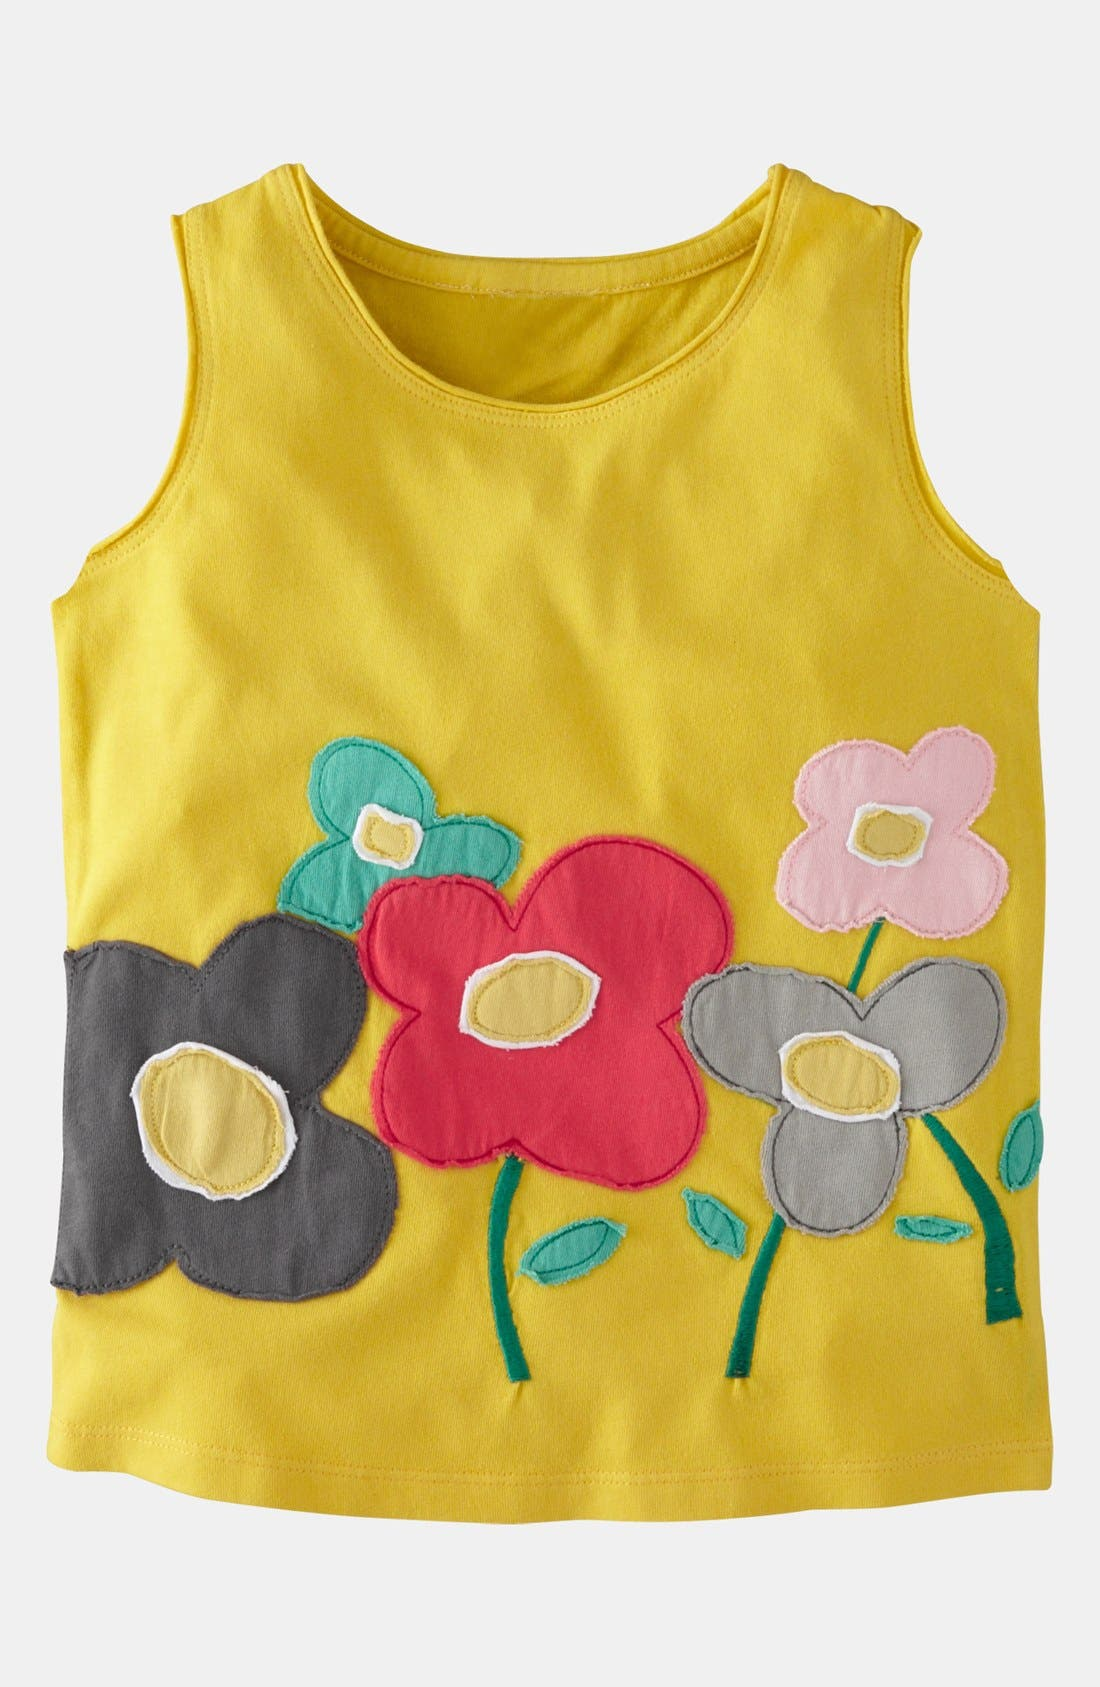 Alternate Image 1 Selected - Mini Boden 'Fab Flower' Tank Top (Toddler)